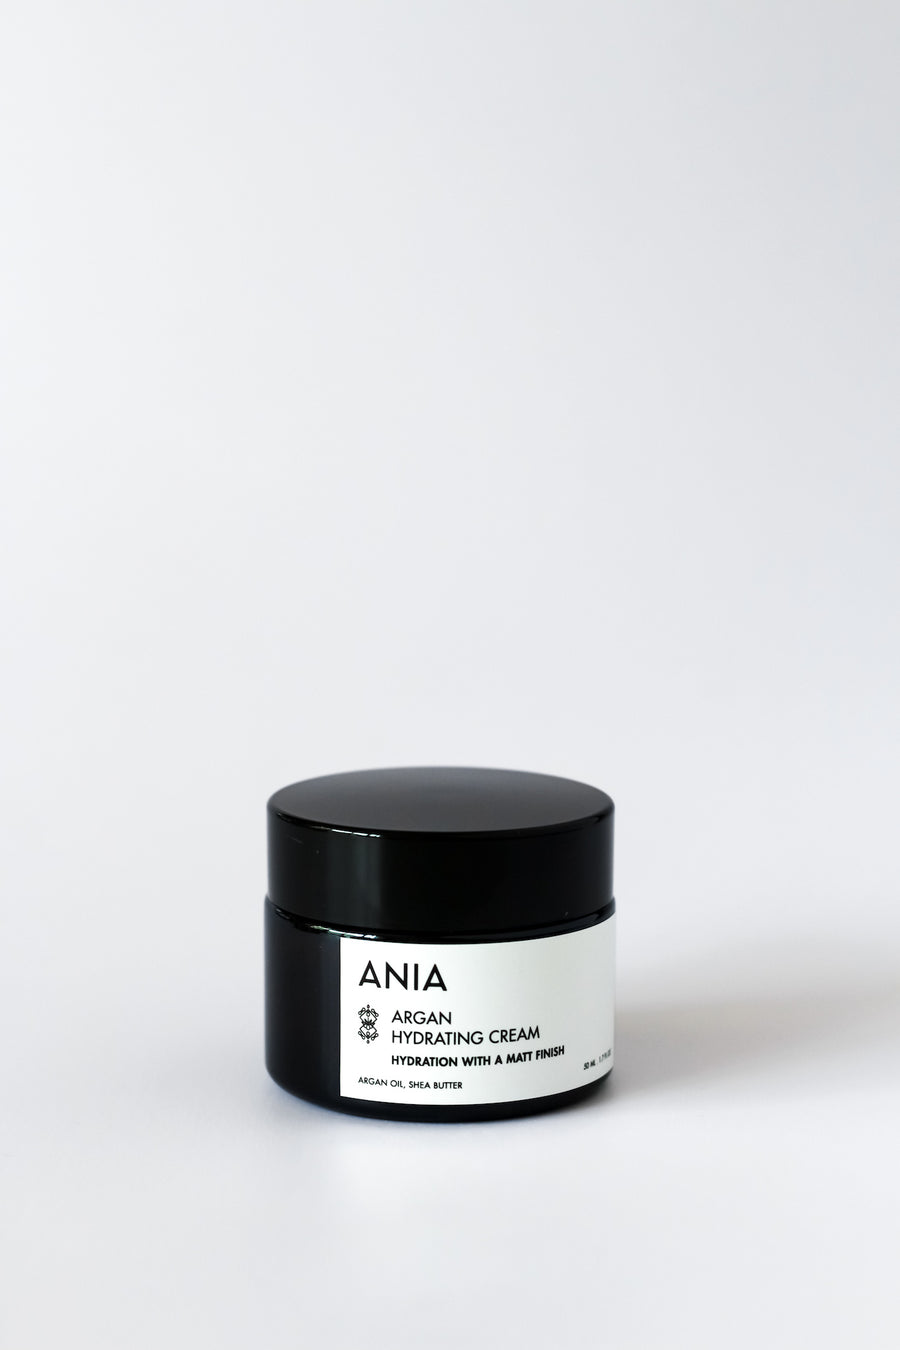 ANIA Argan Hydrating Cream, available on ZERRIN